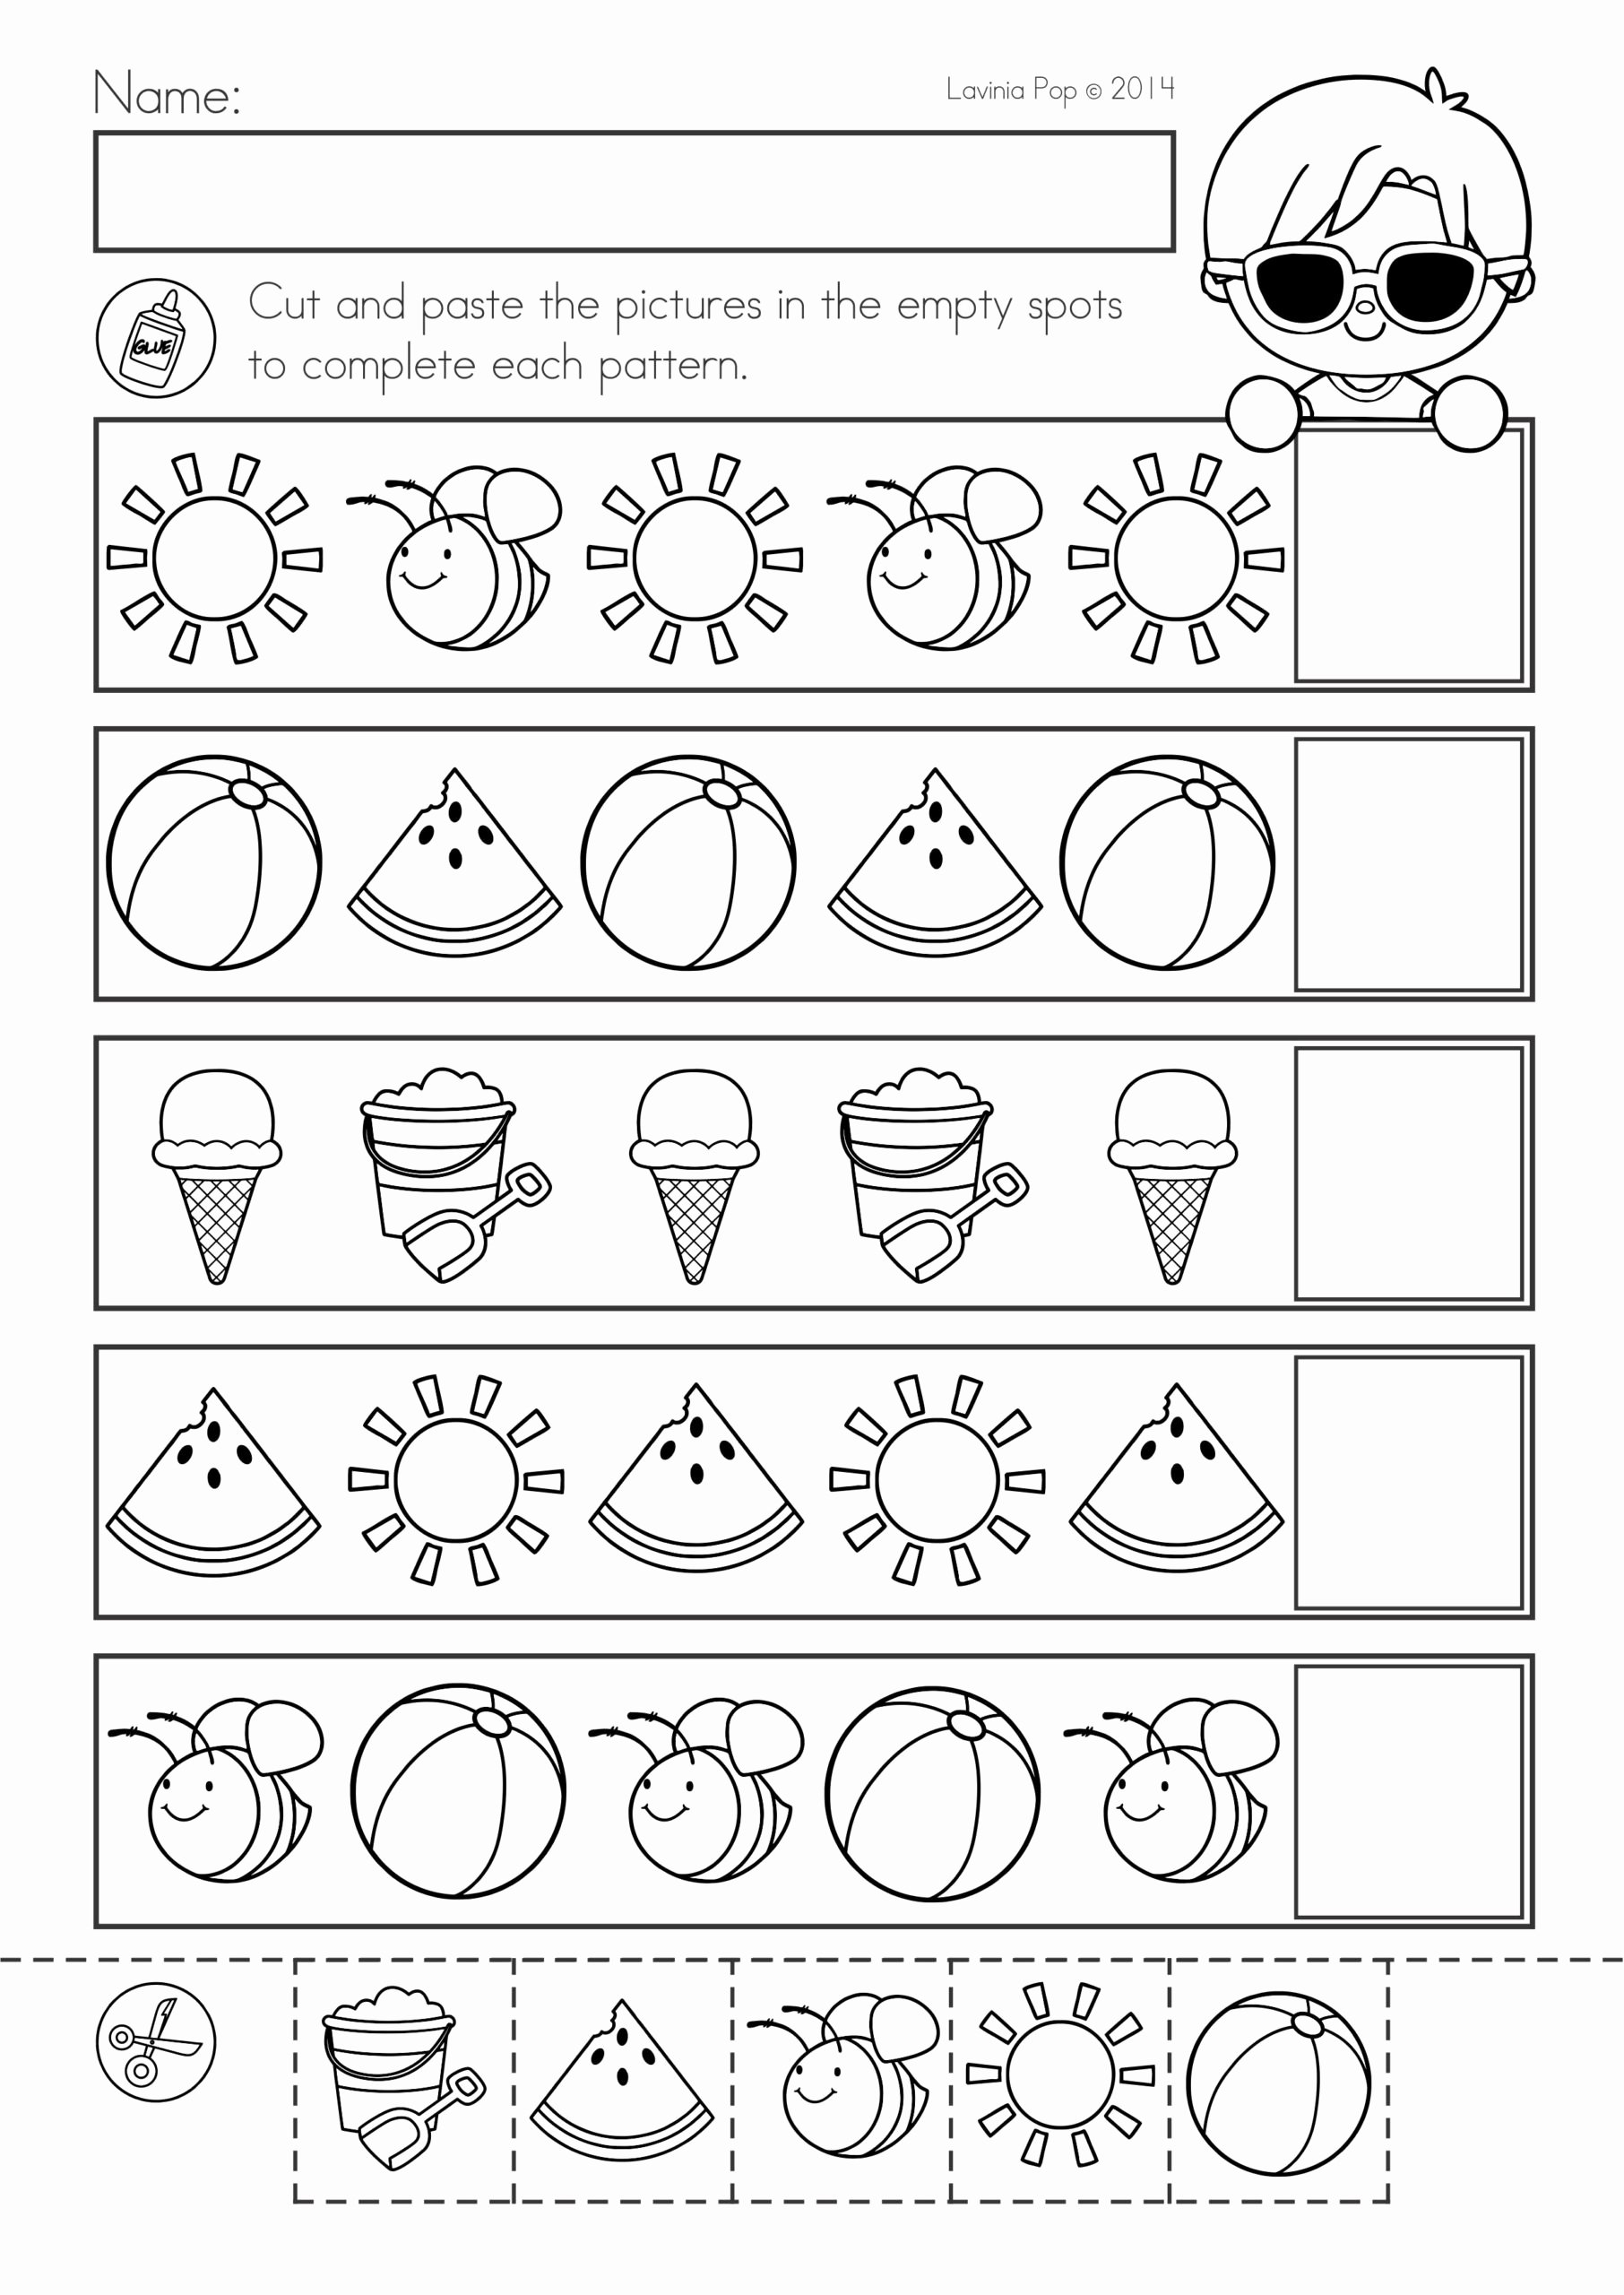 Math Printable Worksheets for Preschoolers Free Math Worksheet Free Printable Worksheets for Preschoolers